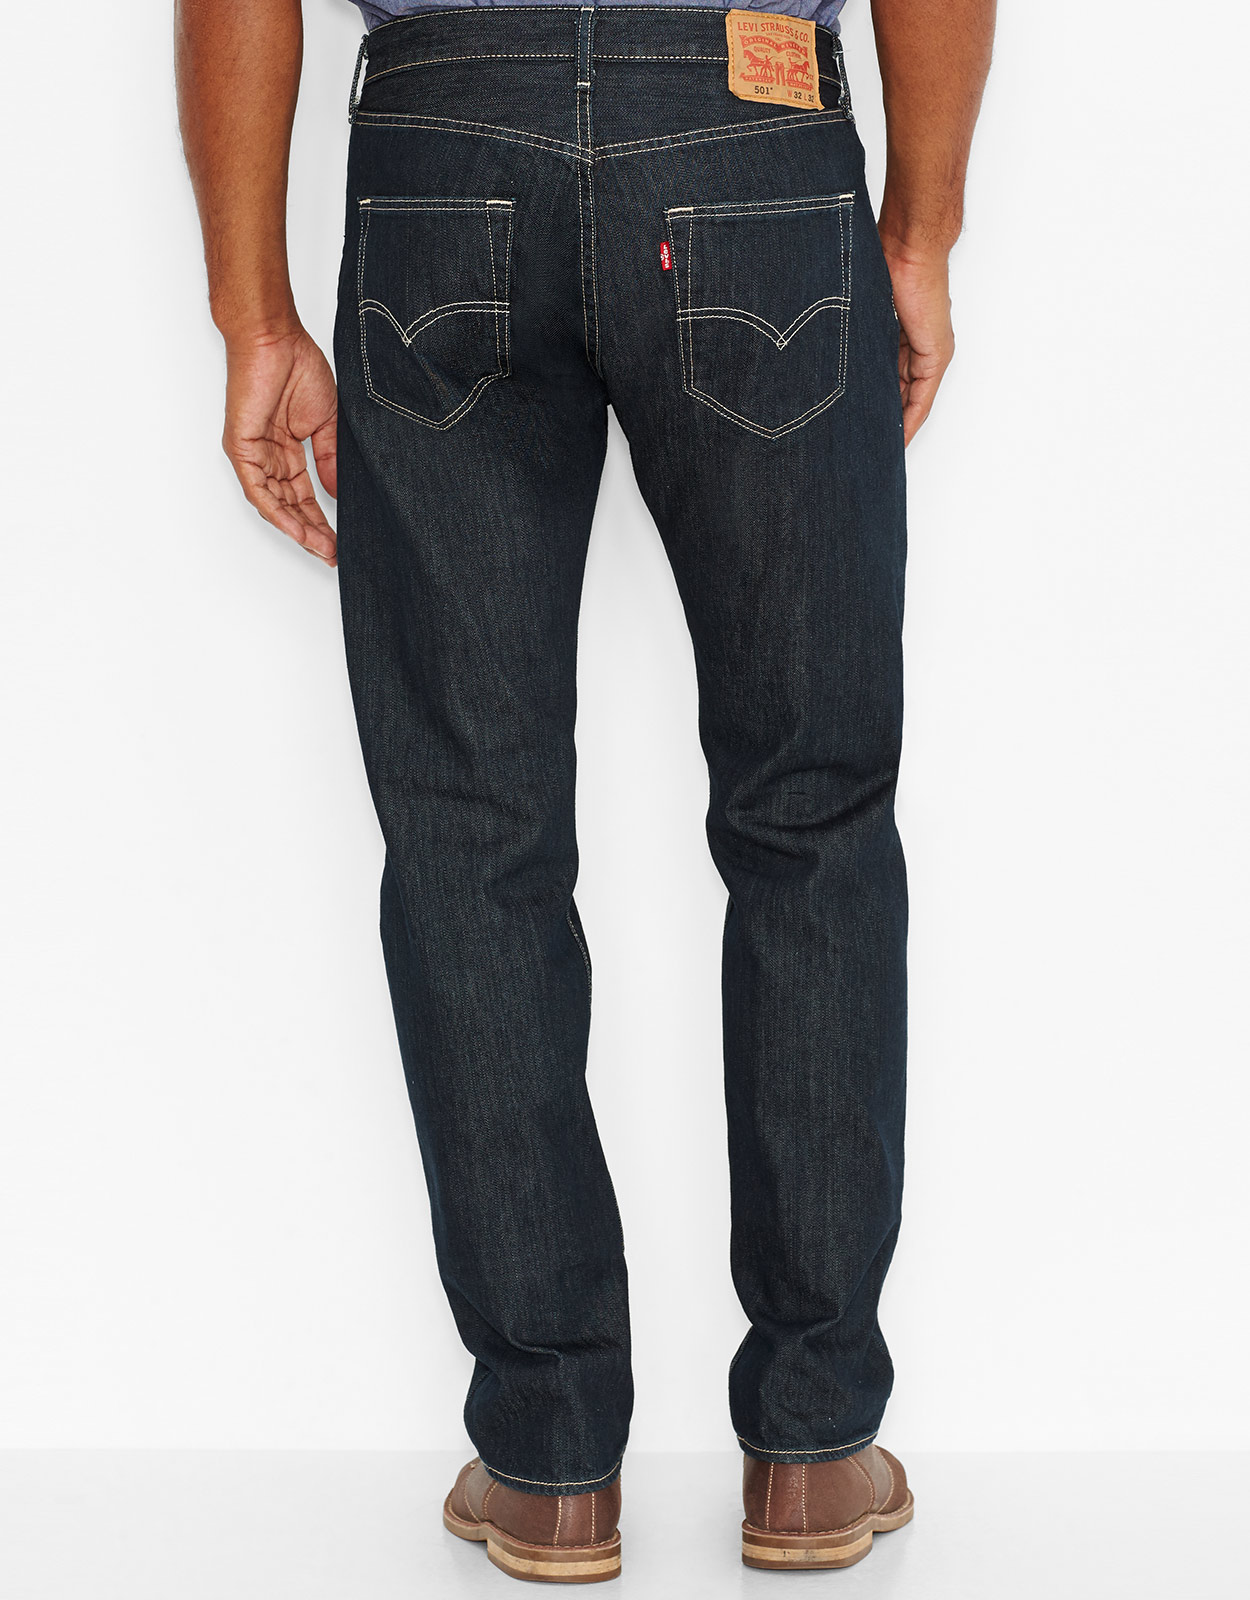 Jeans Levis Levi's Men's 501 Original Fit Jeans - Clean Rigid